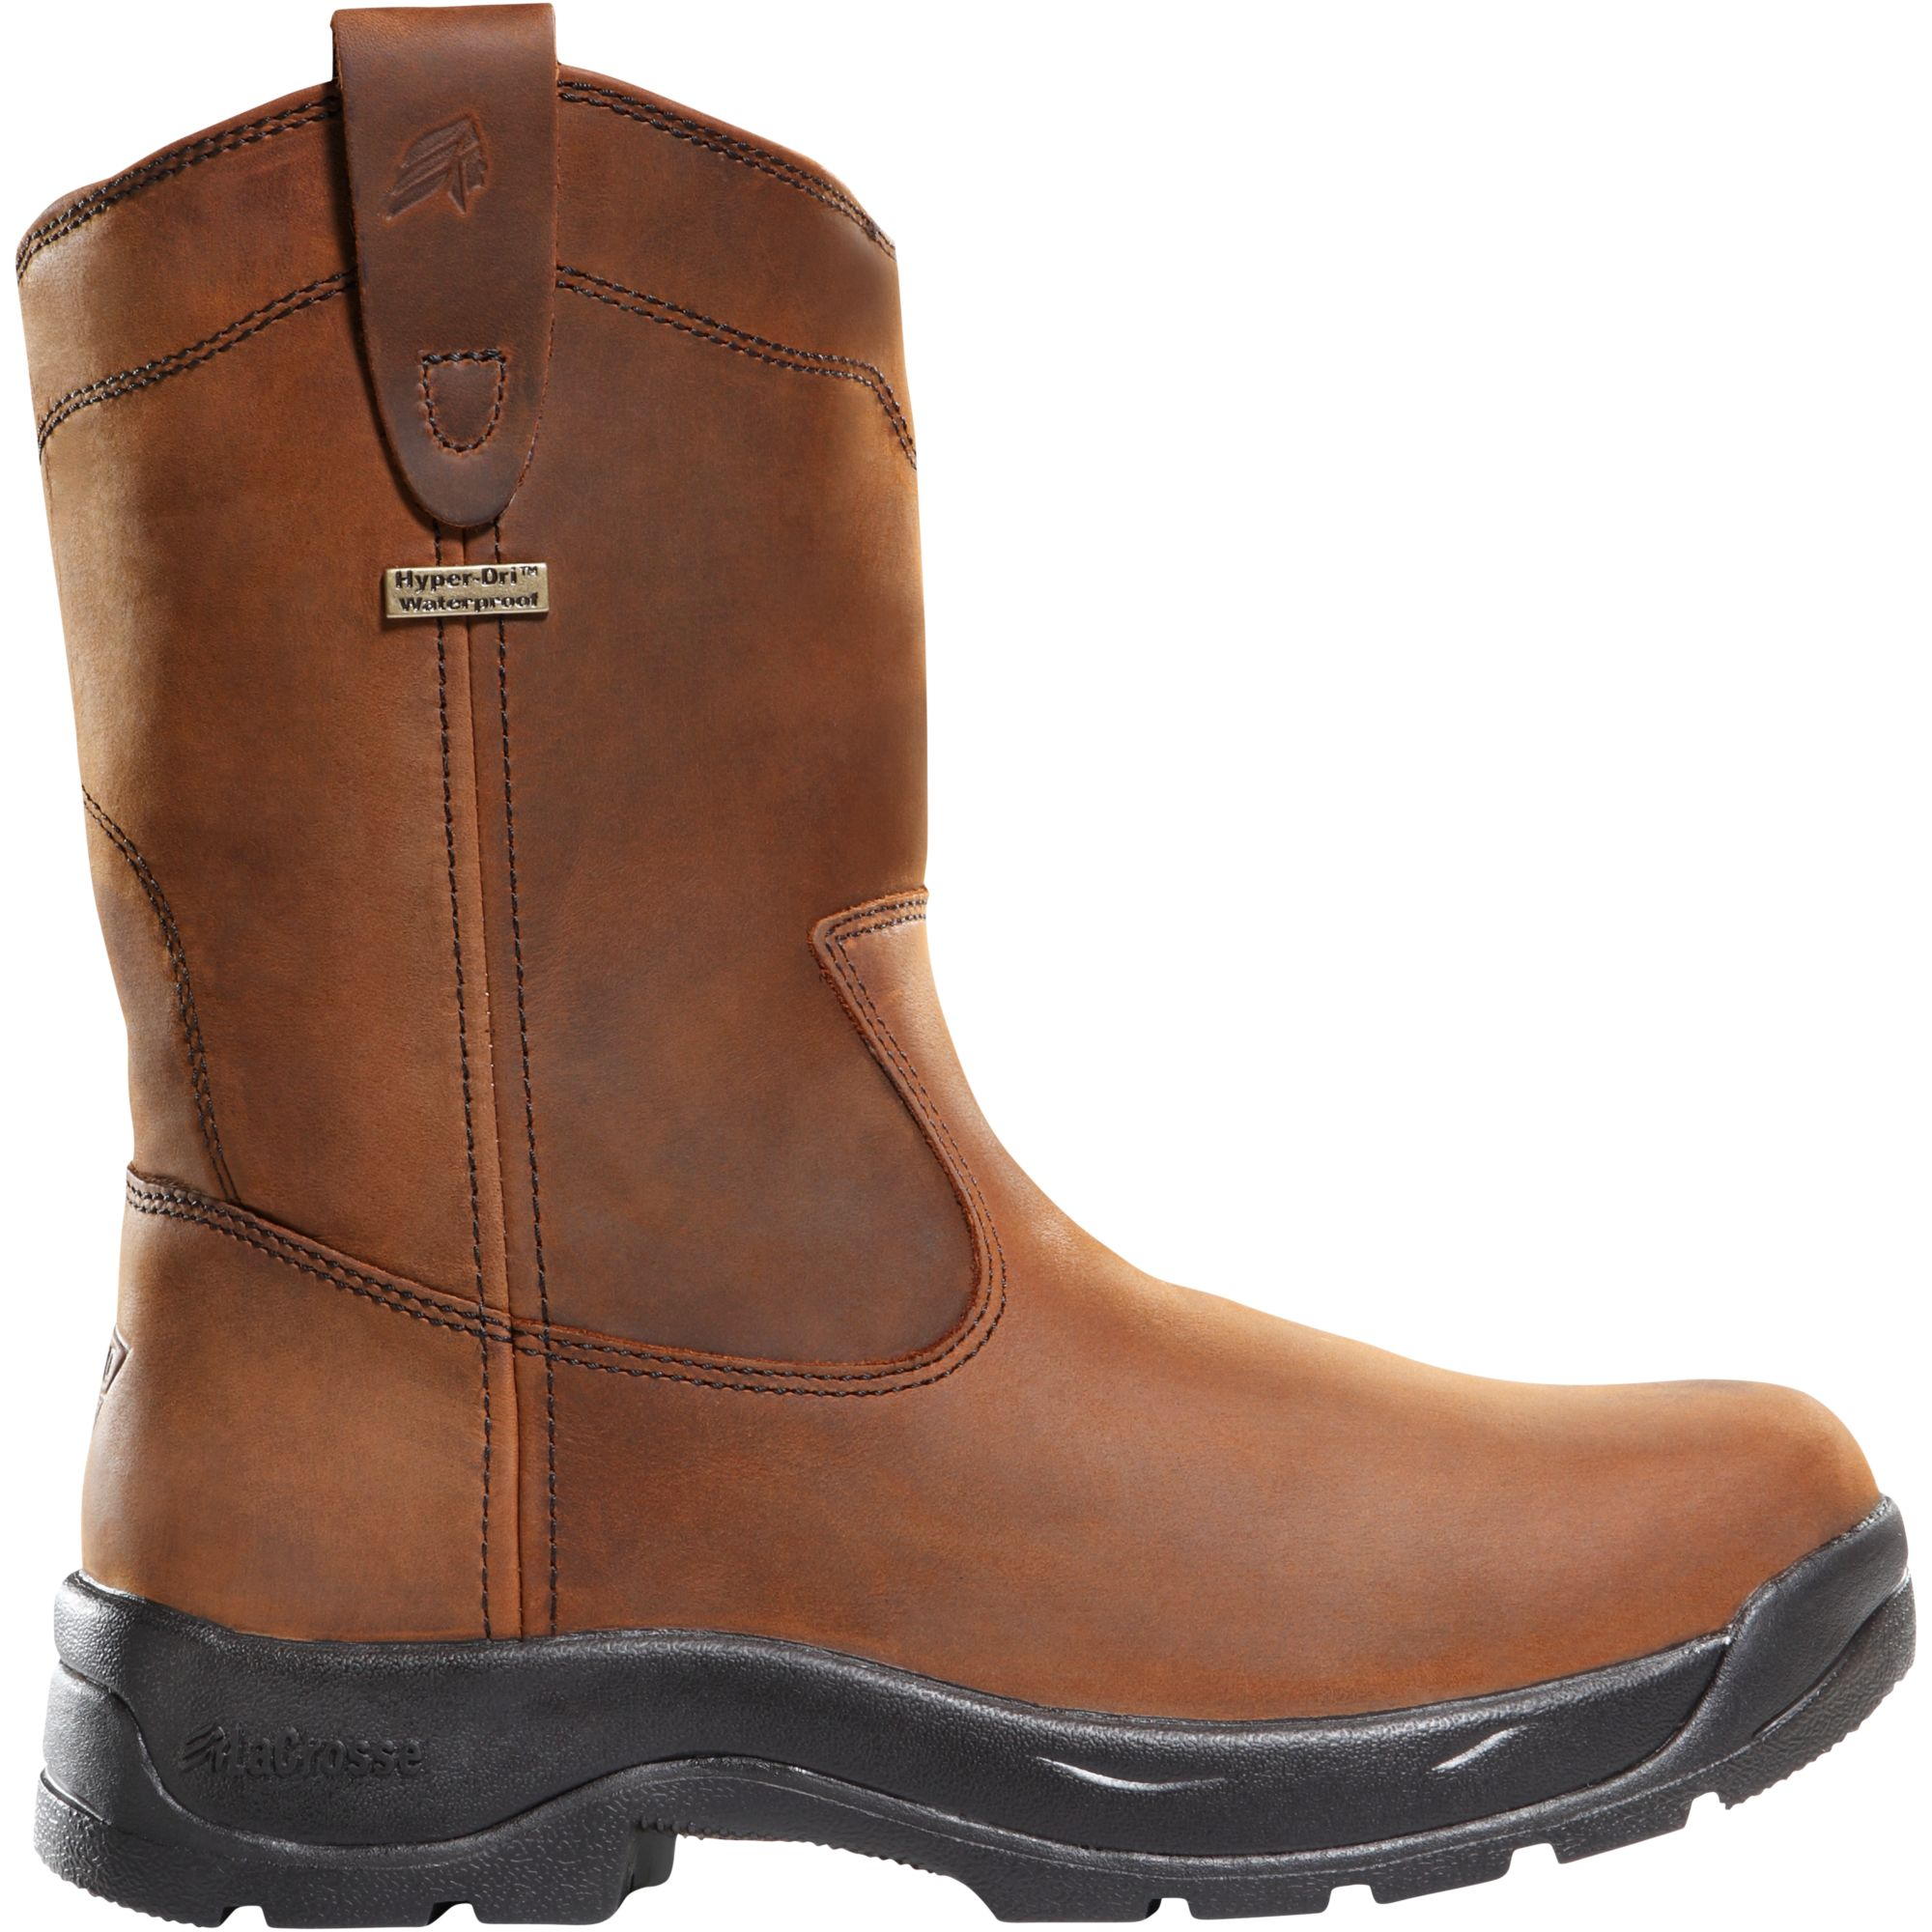 5494ca1b1 Internal pull loops offer a quick and easy way to transition your boots  from being rolled down to rolled up.